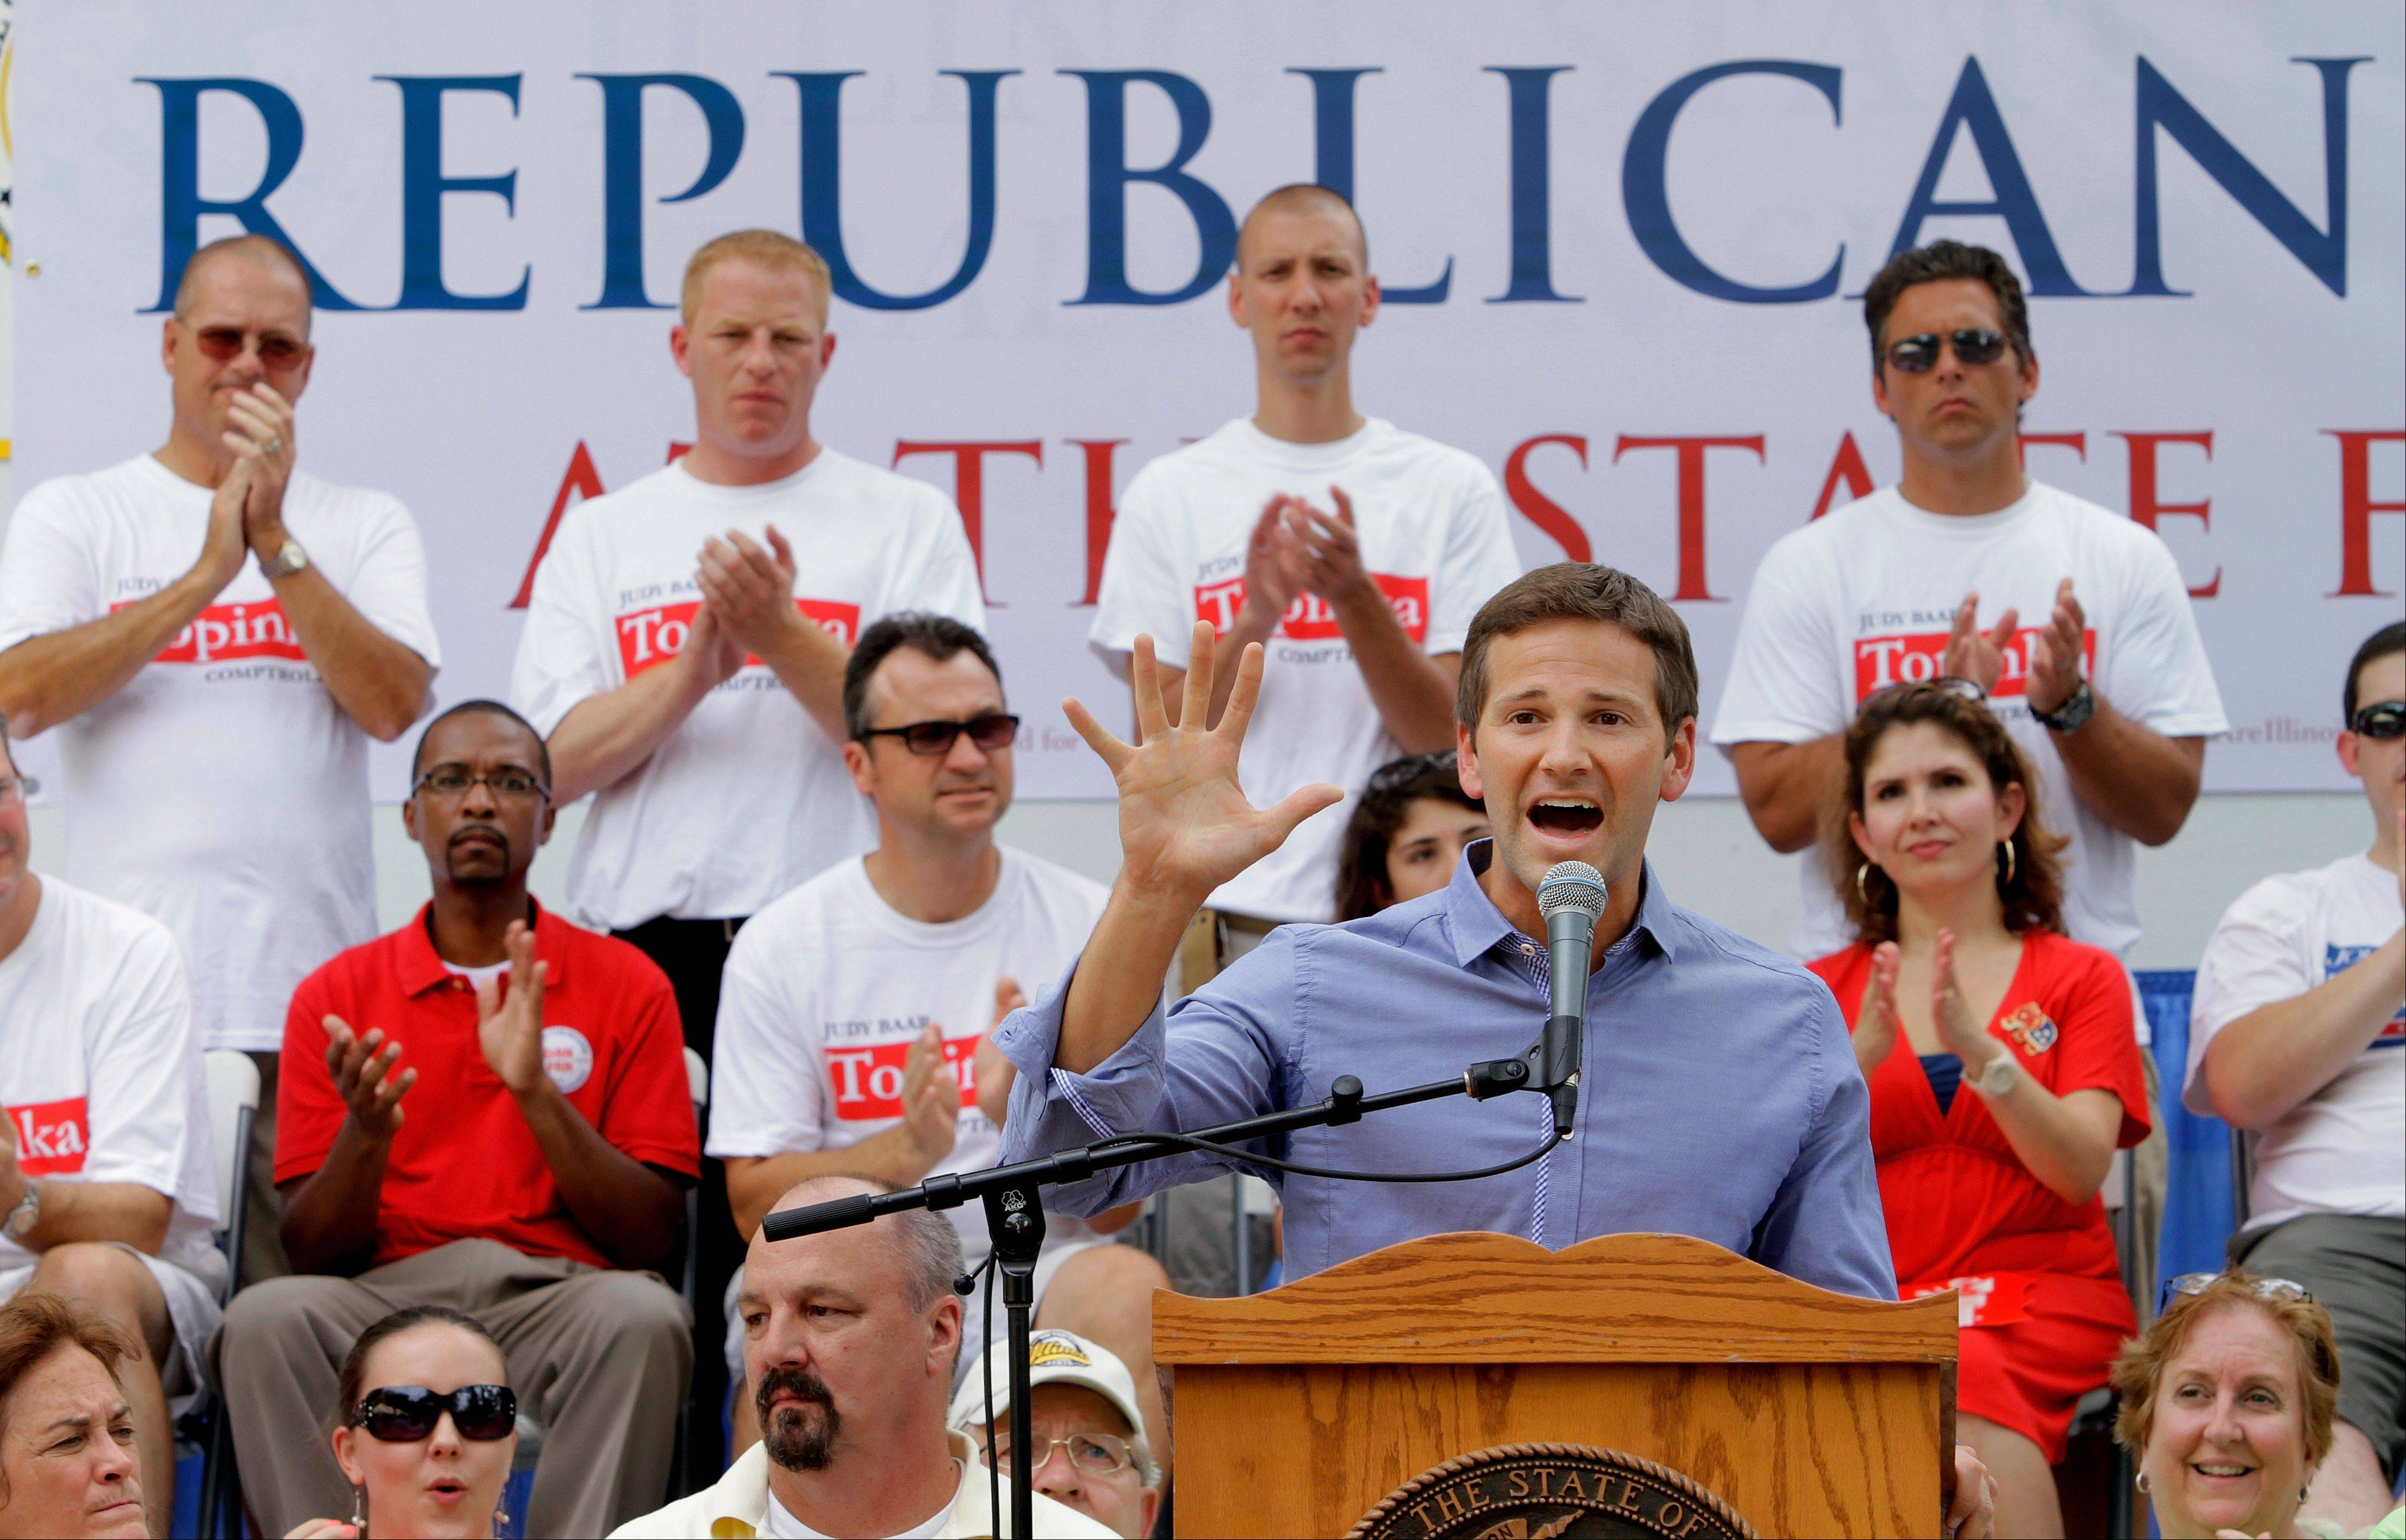 Congressman Aaron Schock of Peoria participates in a rally during Republican Day at the Illinois State Fair in 2011. He�s being investigated by the House Ethics Committee.